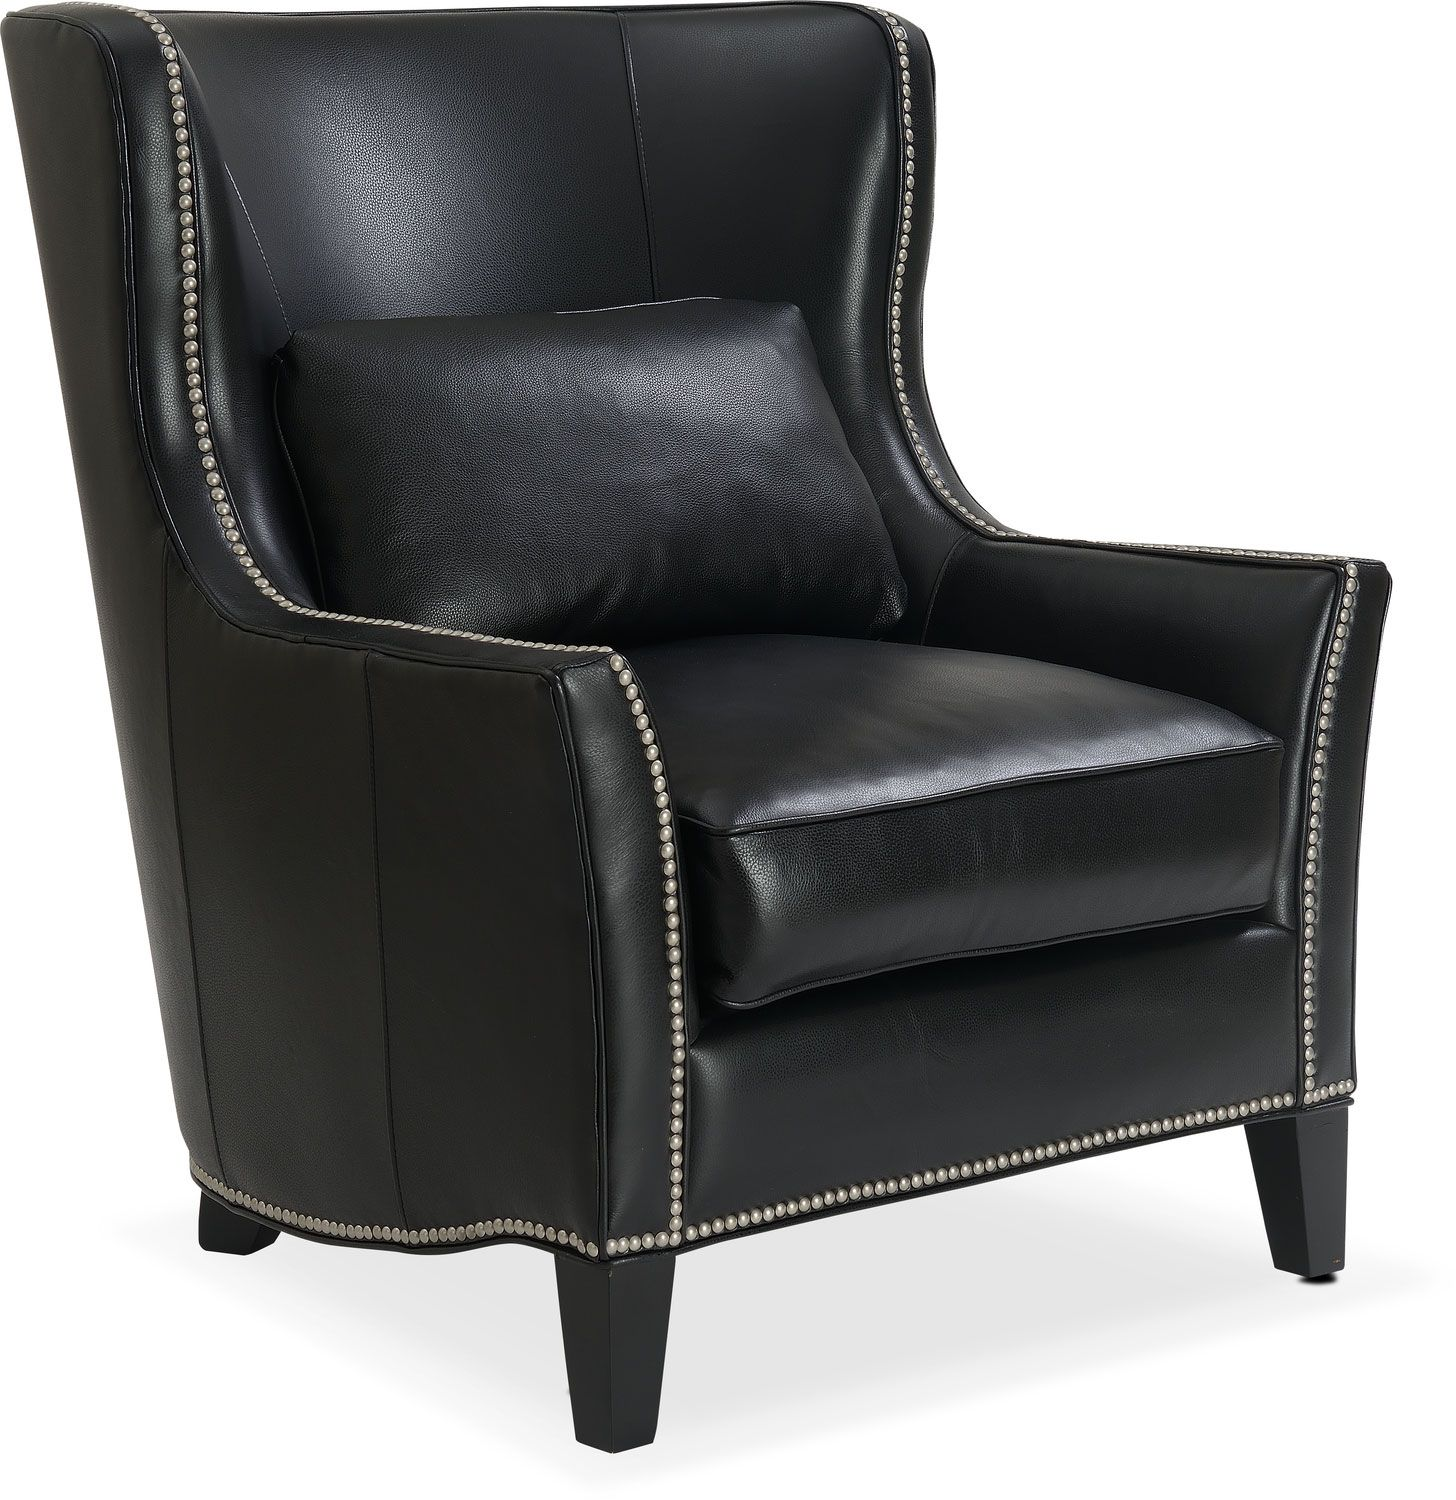 accent and occasional furniture - fenwick accent chair - black